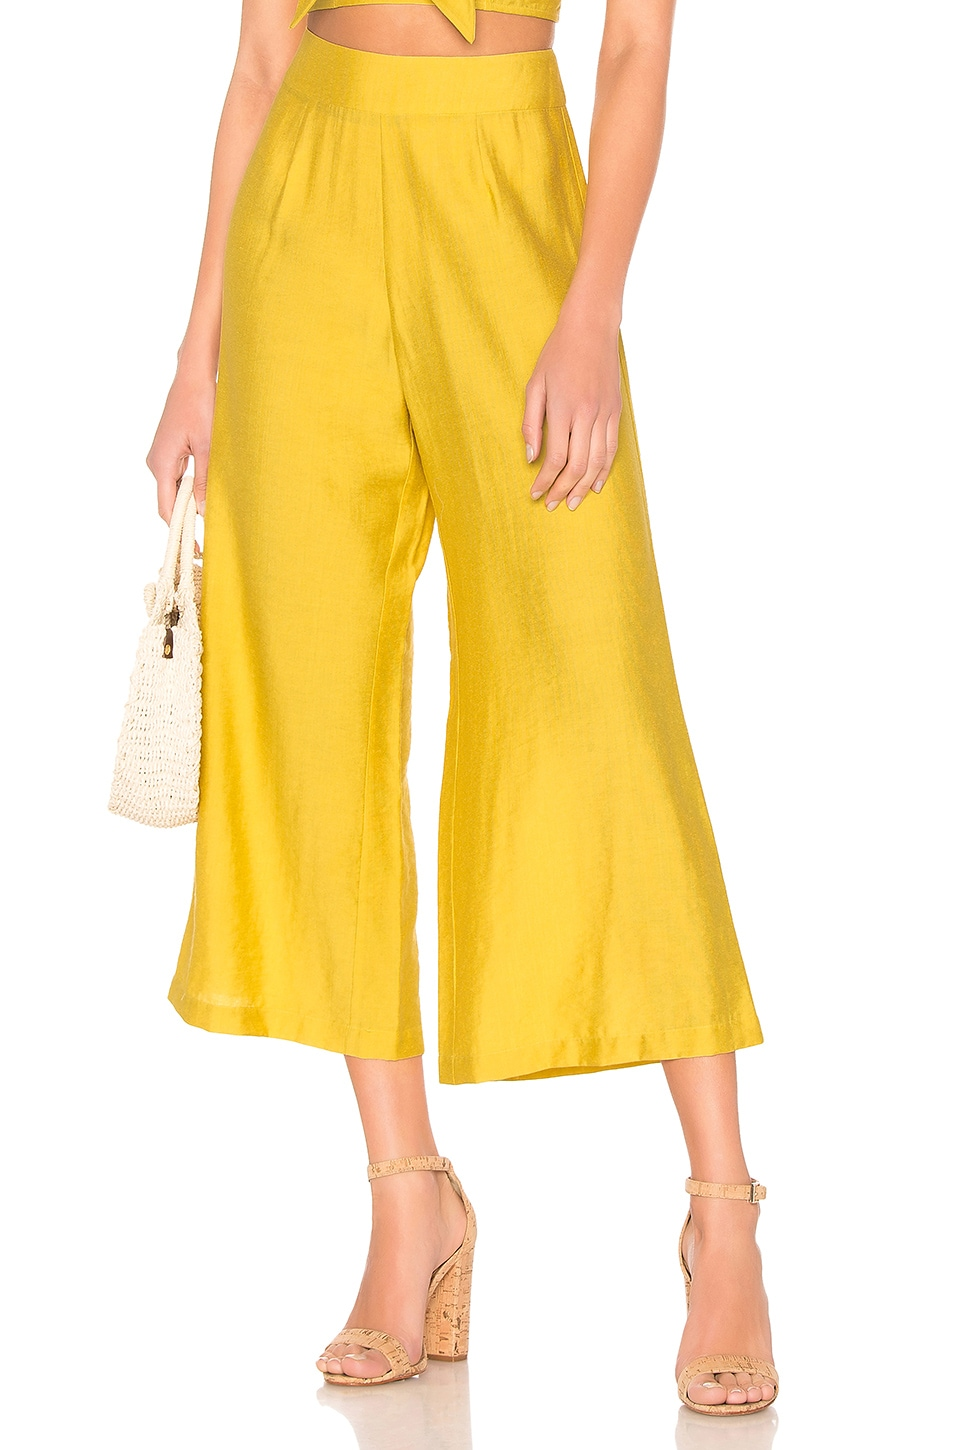 Blue Life High Waisted Culotte in Mimosa